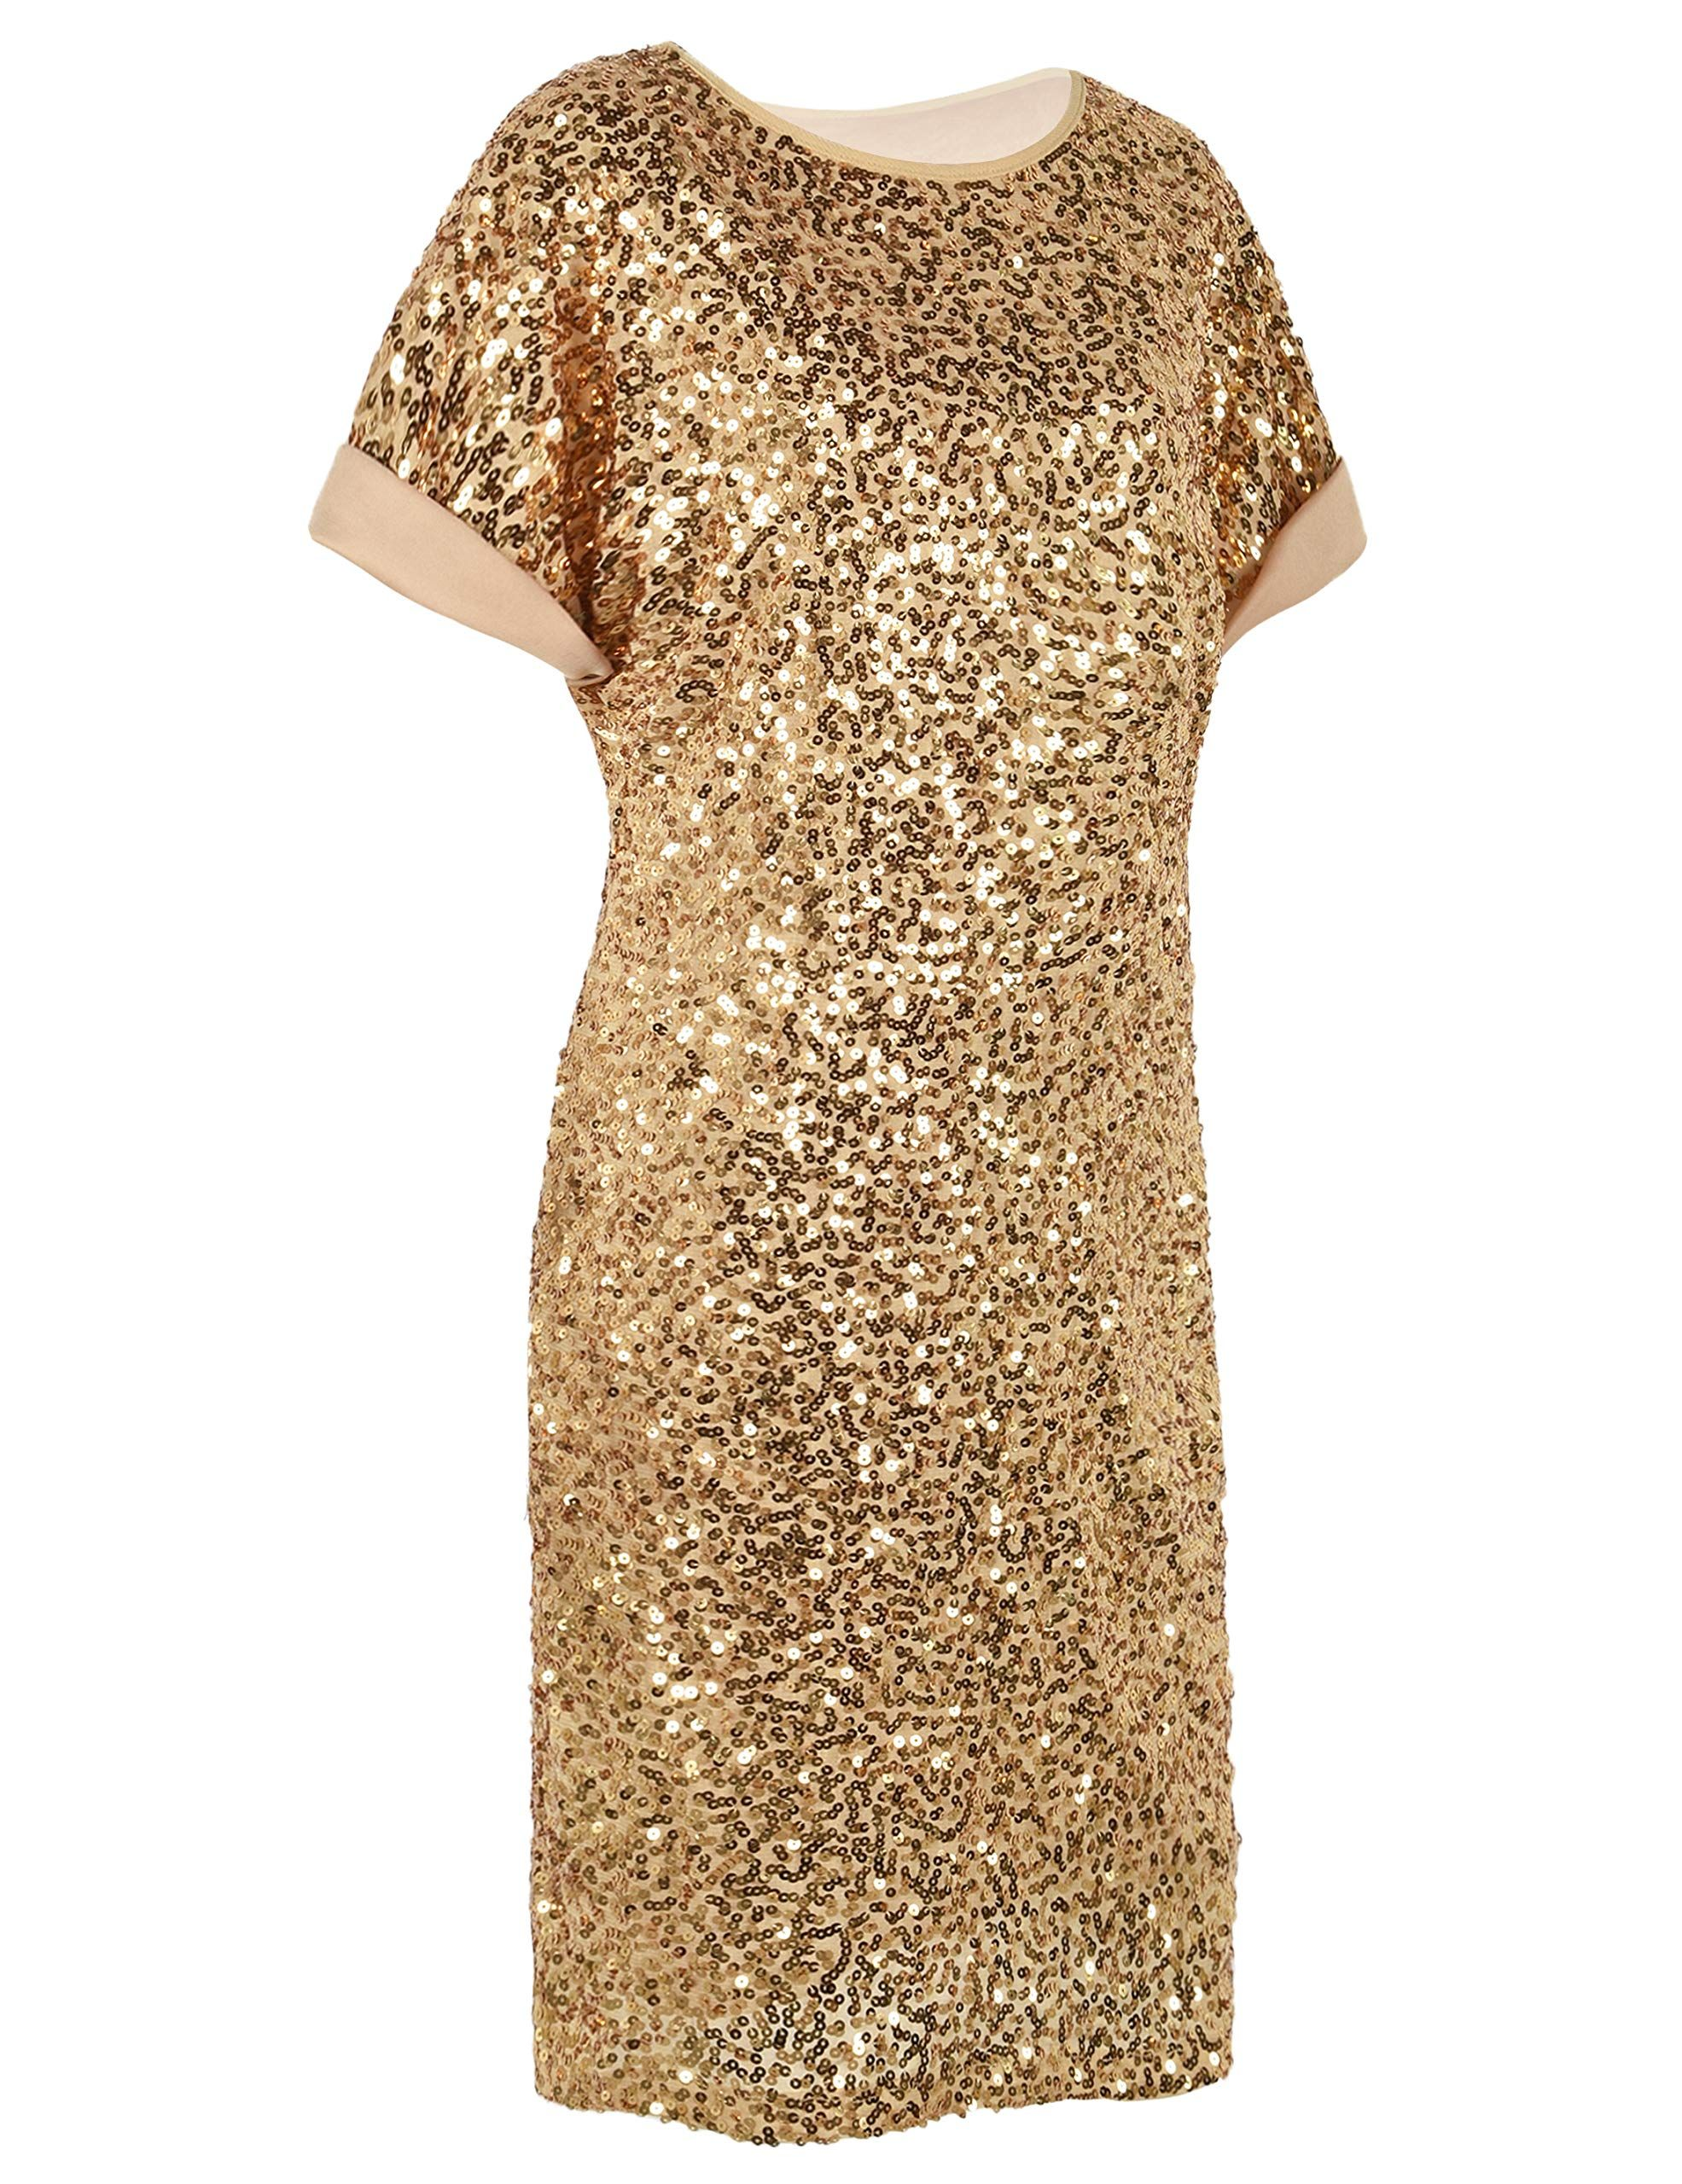 1889bd779361 PrettyGuide Women's Sequin Cocktail Dress Loose Glitter Short Sleeve Party  Tunic Dress S Gold #affiliate #glitter #dress